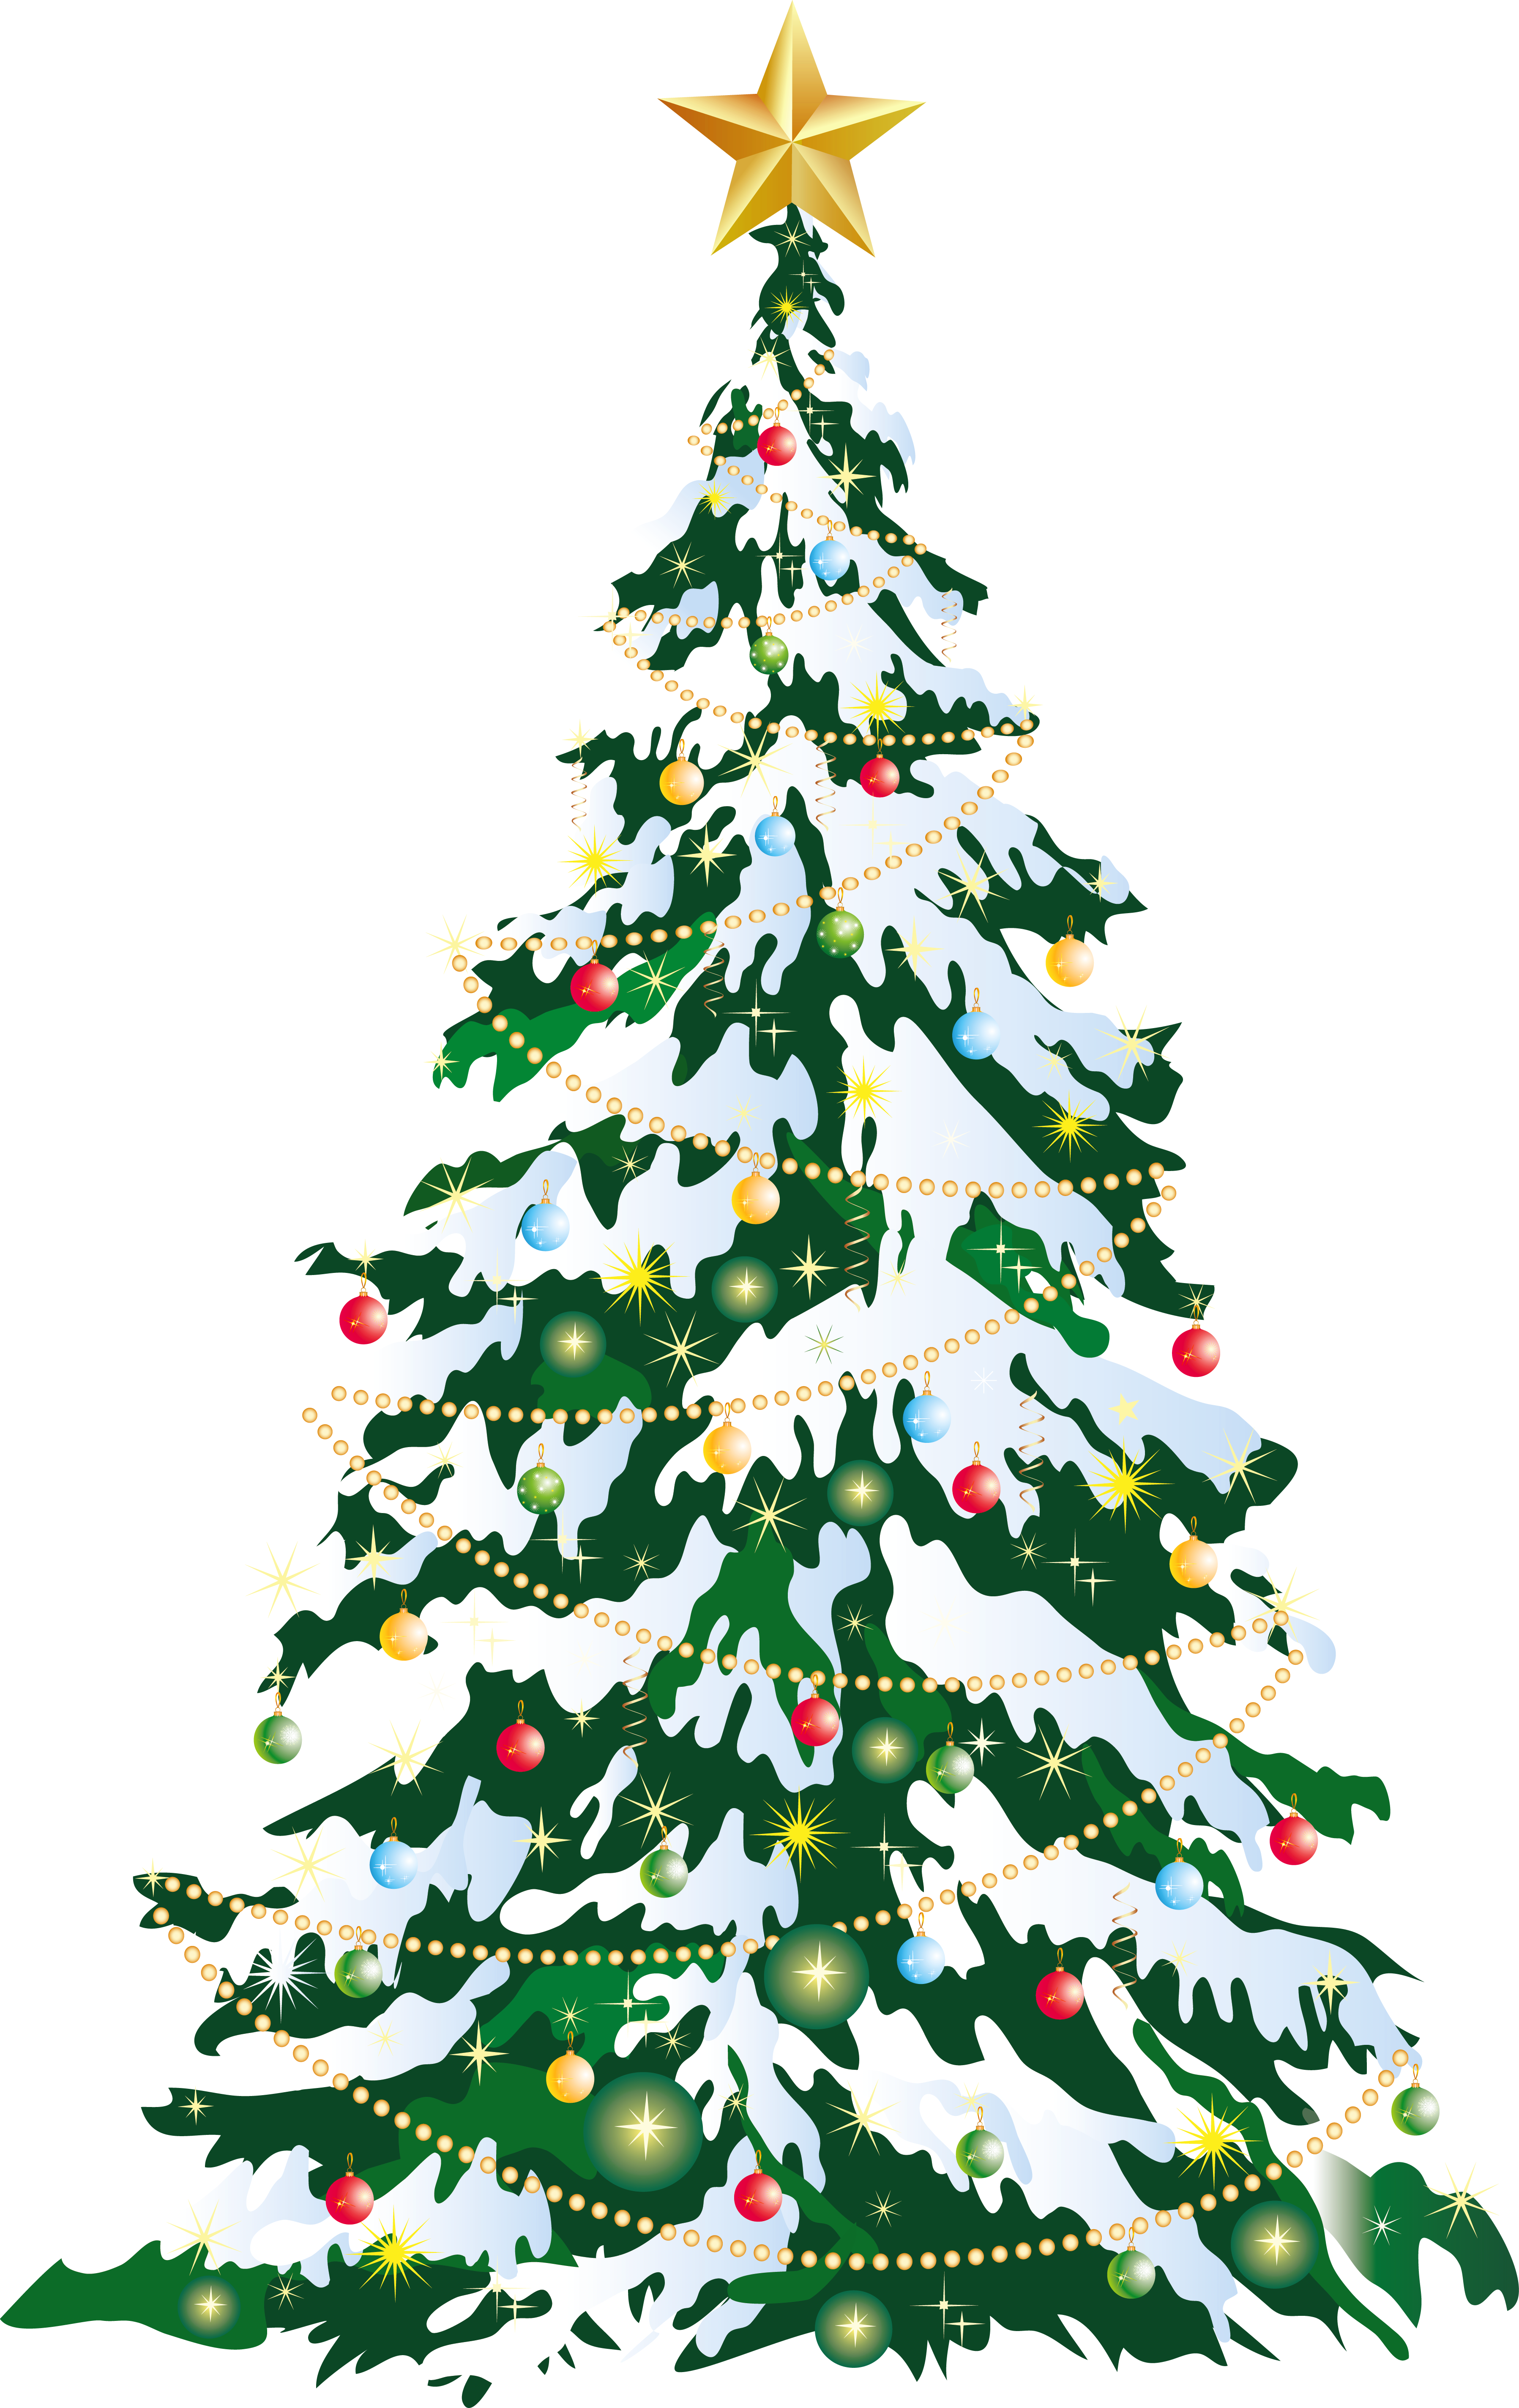 christmas tree art cliparts co reindeer clip art free images reindeer clipart free download